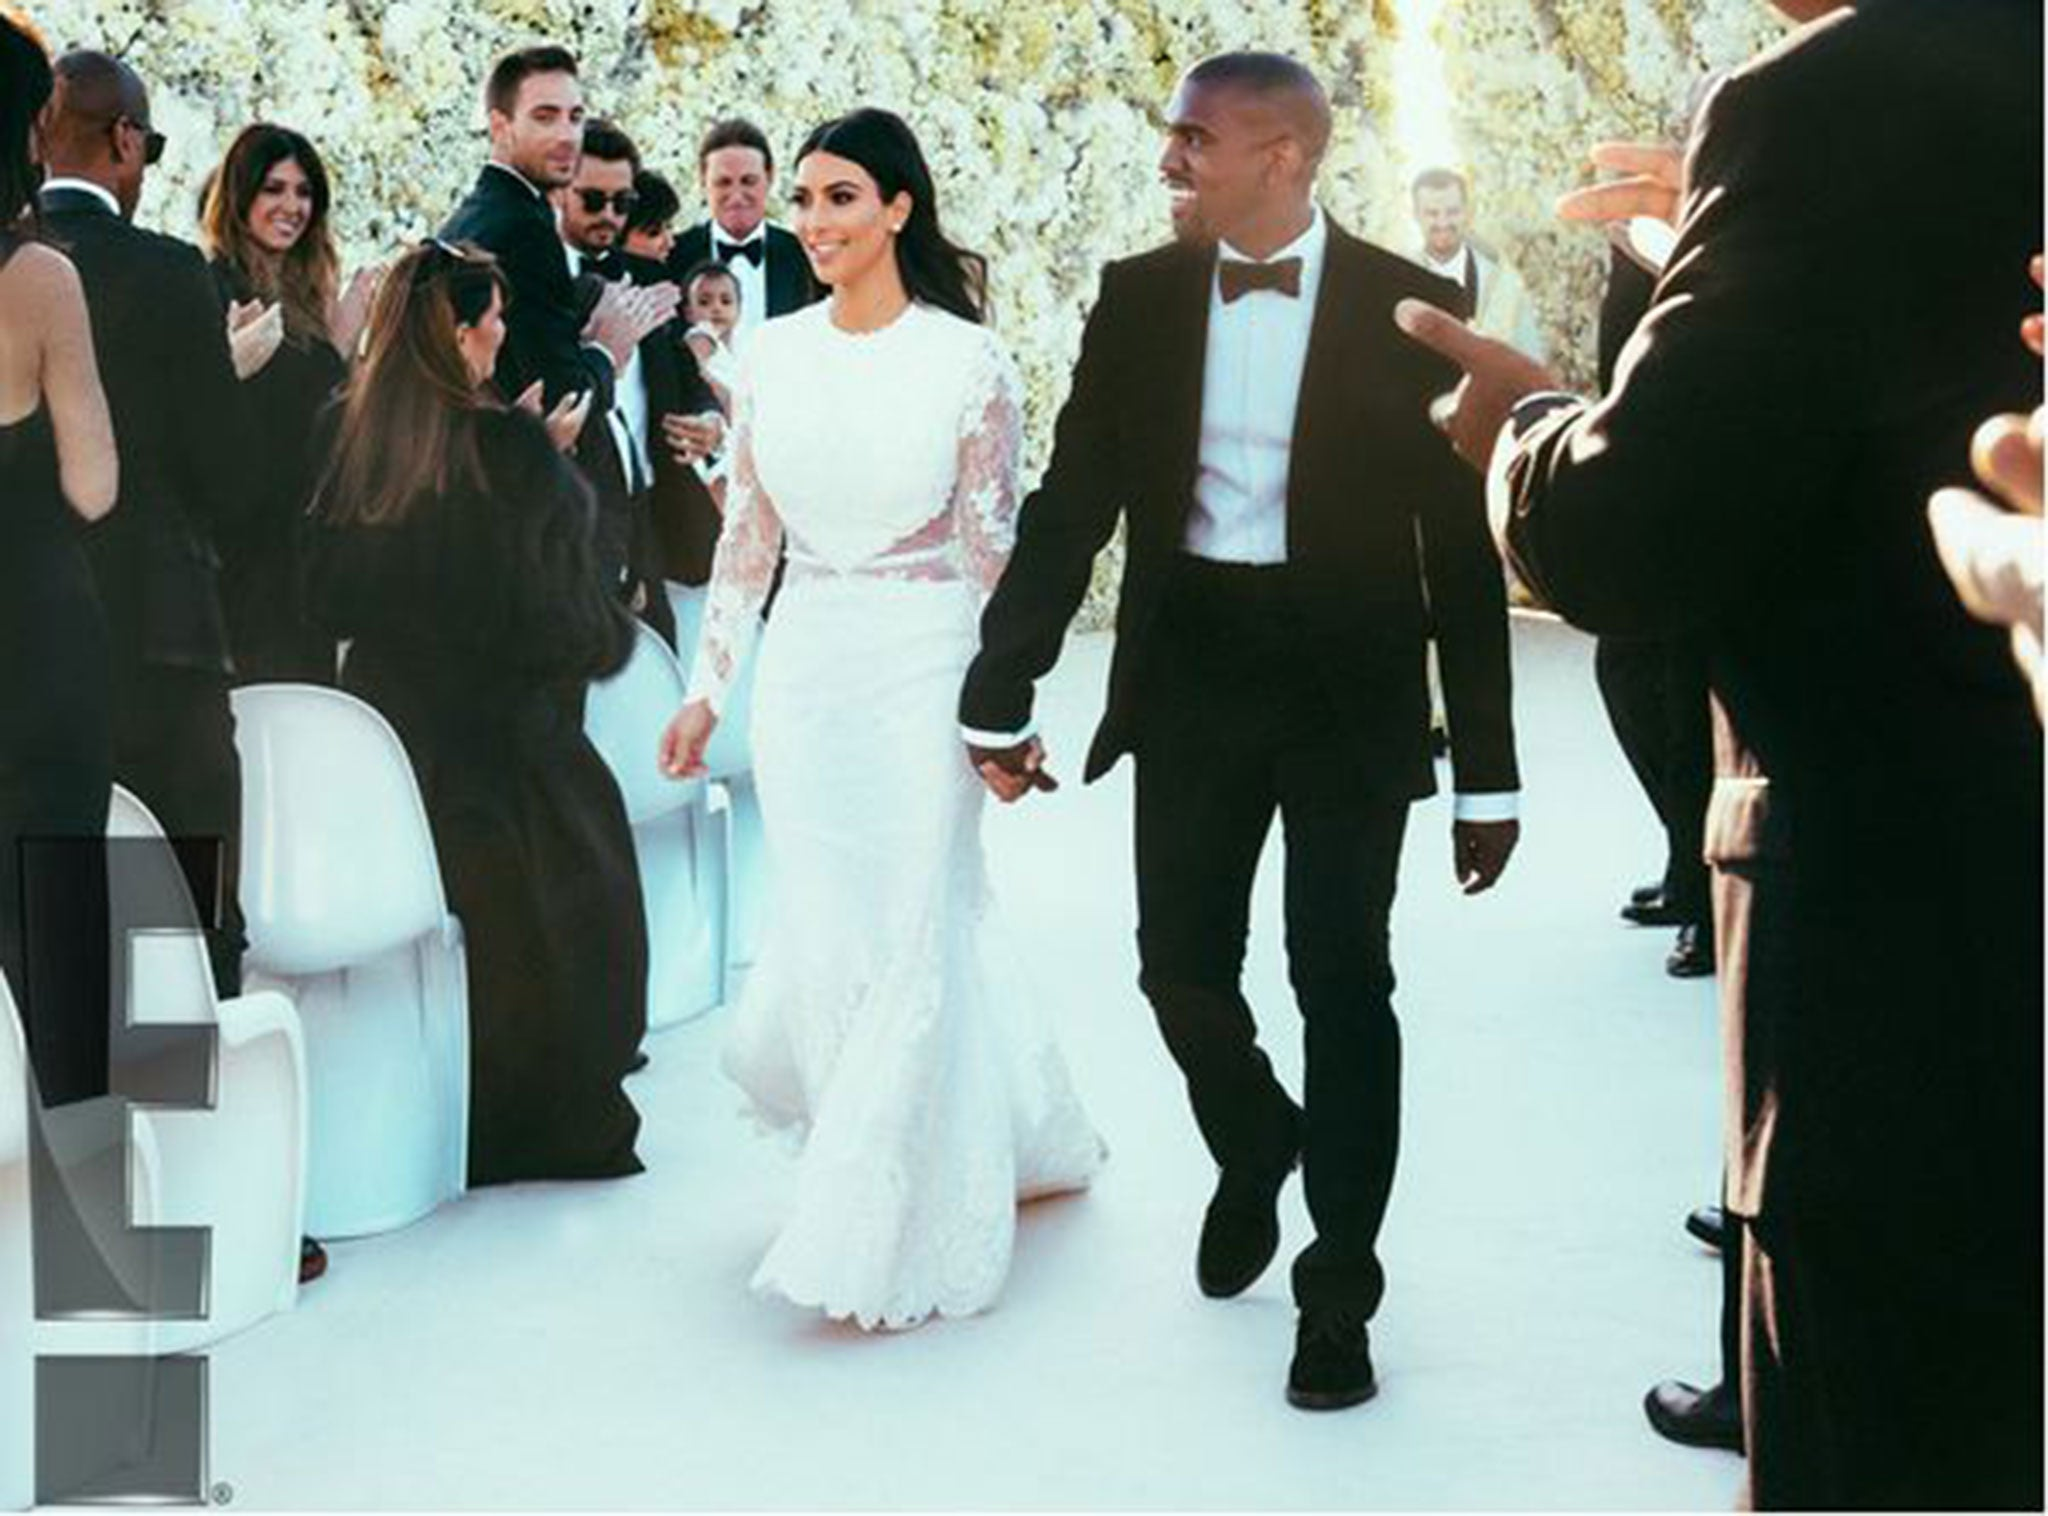 Kim Kardashian News, Pictures, and Videos E!